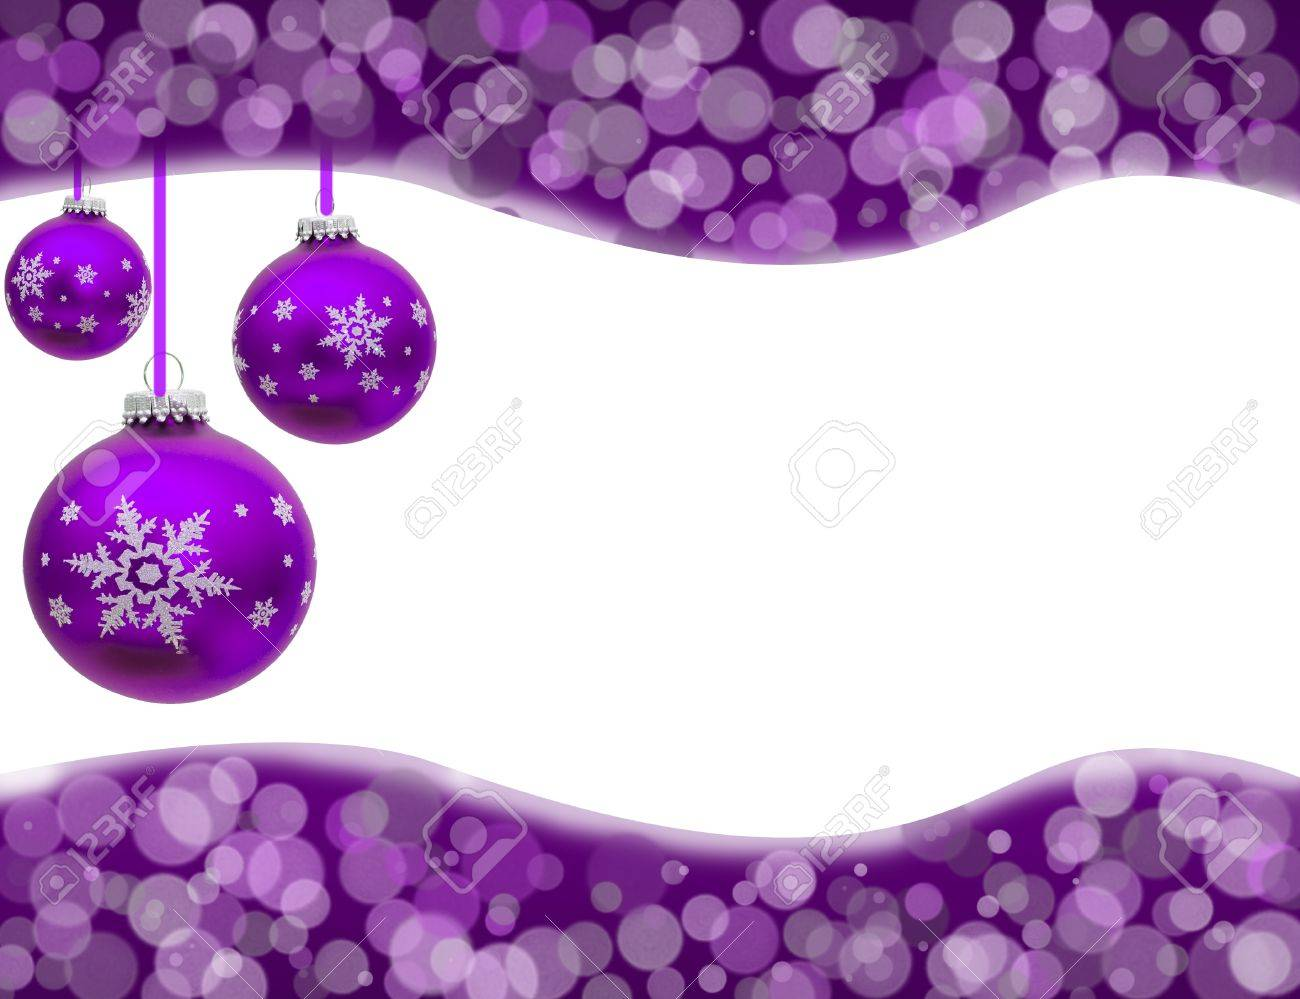 Lavender christmas ornaments - Christmas Ornaments And Light Border Isolated On White Christmas Time Stock Photo 11557947